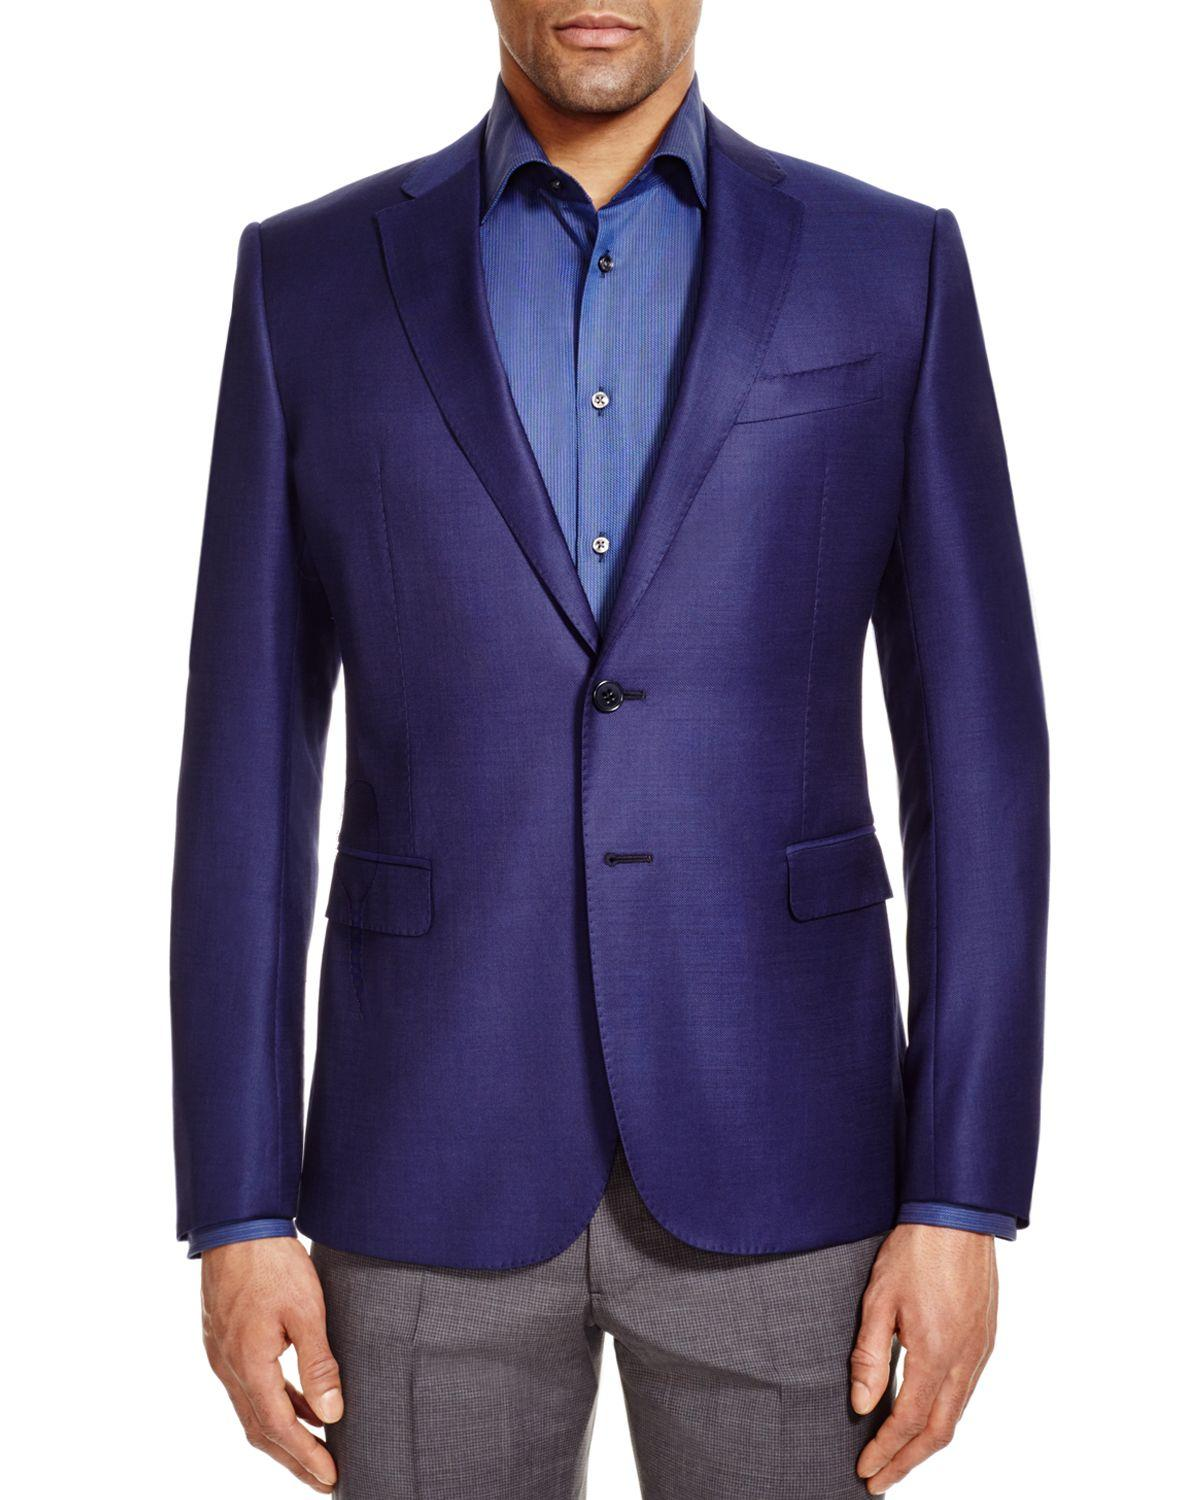 Free shipping on men's suits, suit jackets and sport coats at londonmetalumni.ml Shop Nordstrom Men's Shop, Boss and more from the best brands. Totally free shipping and returns.